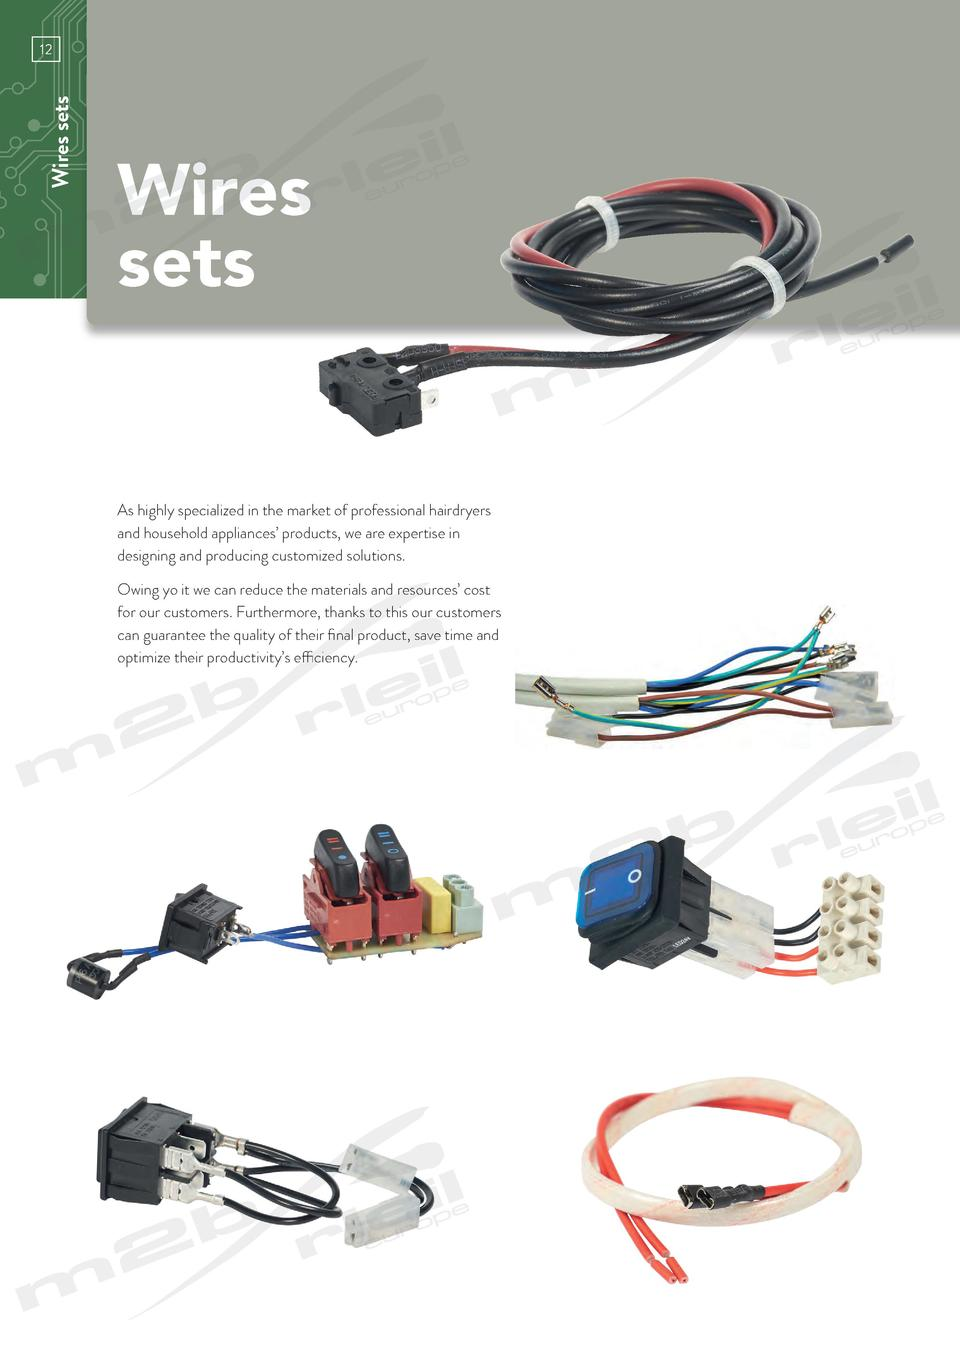 Wires sets  12  www.m2bswitches.com  Wires sets As highly specialized in the market of professional hairdryers and househo...